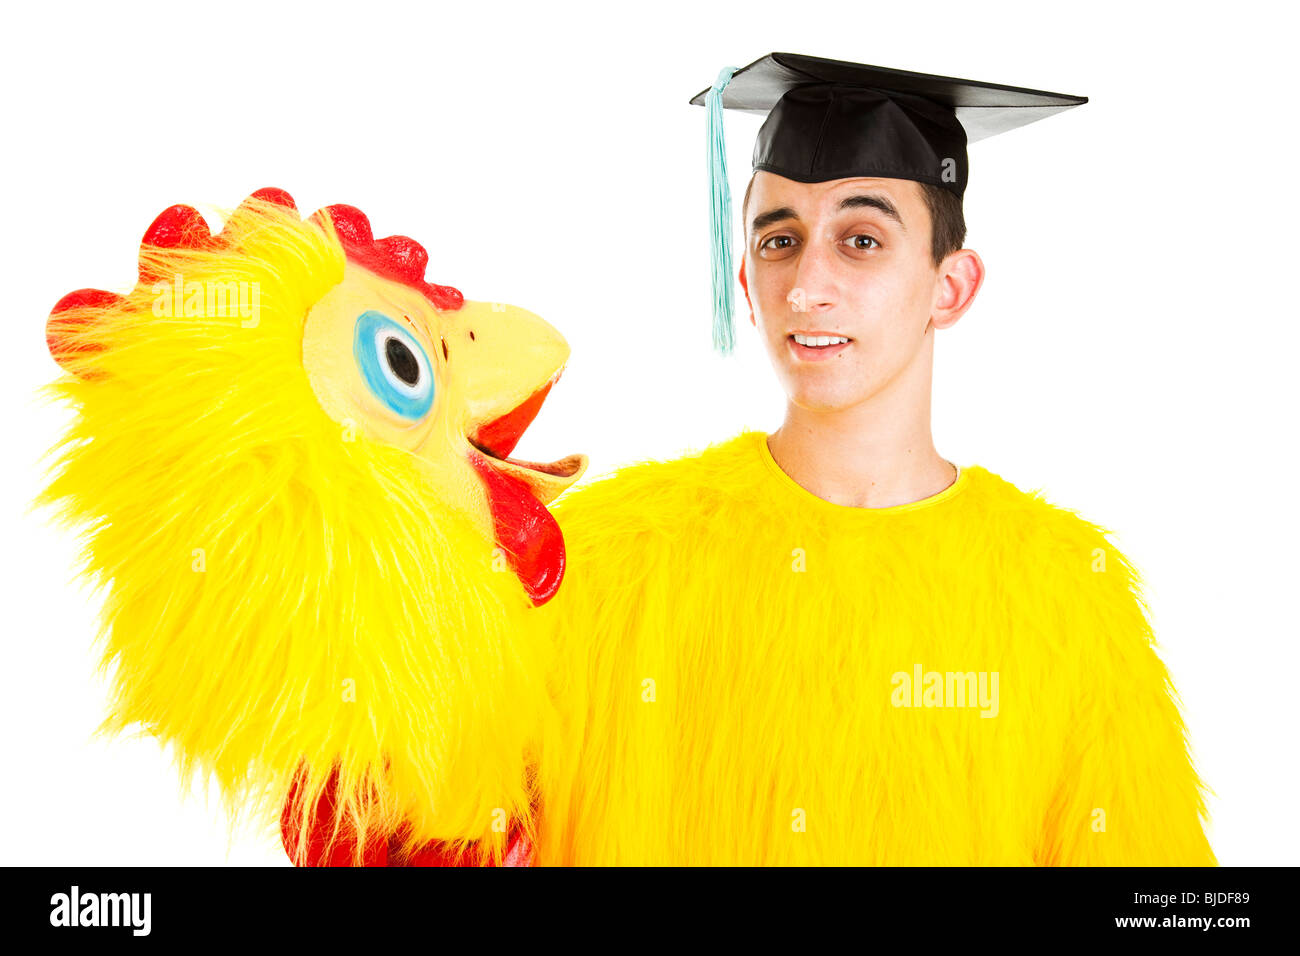 Recent high school or college graduate has to take a low wage job because of tight employment market. Isolated. Stock Photo